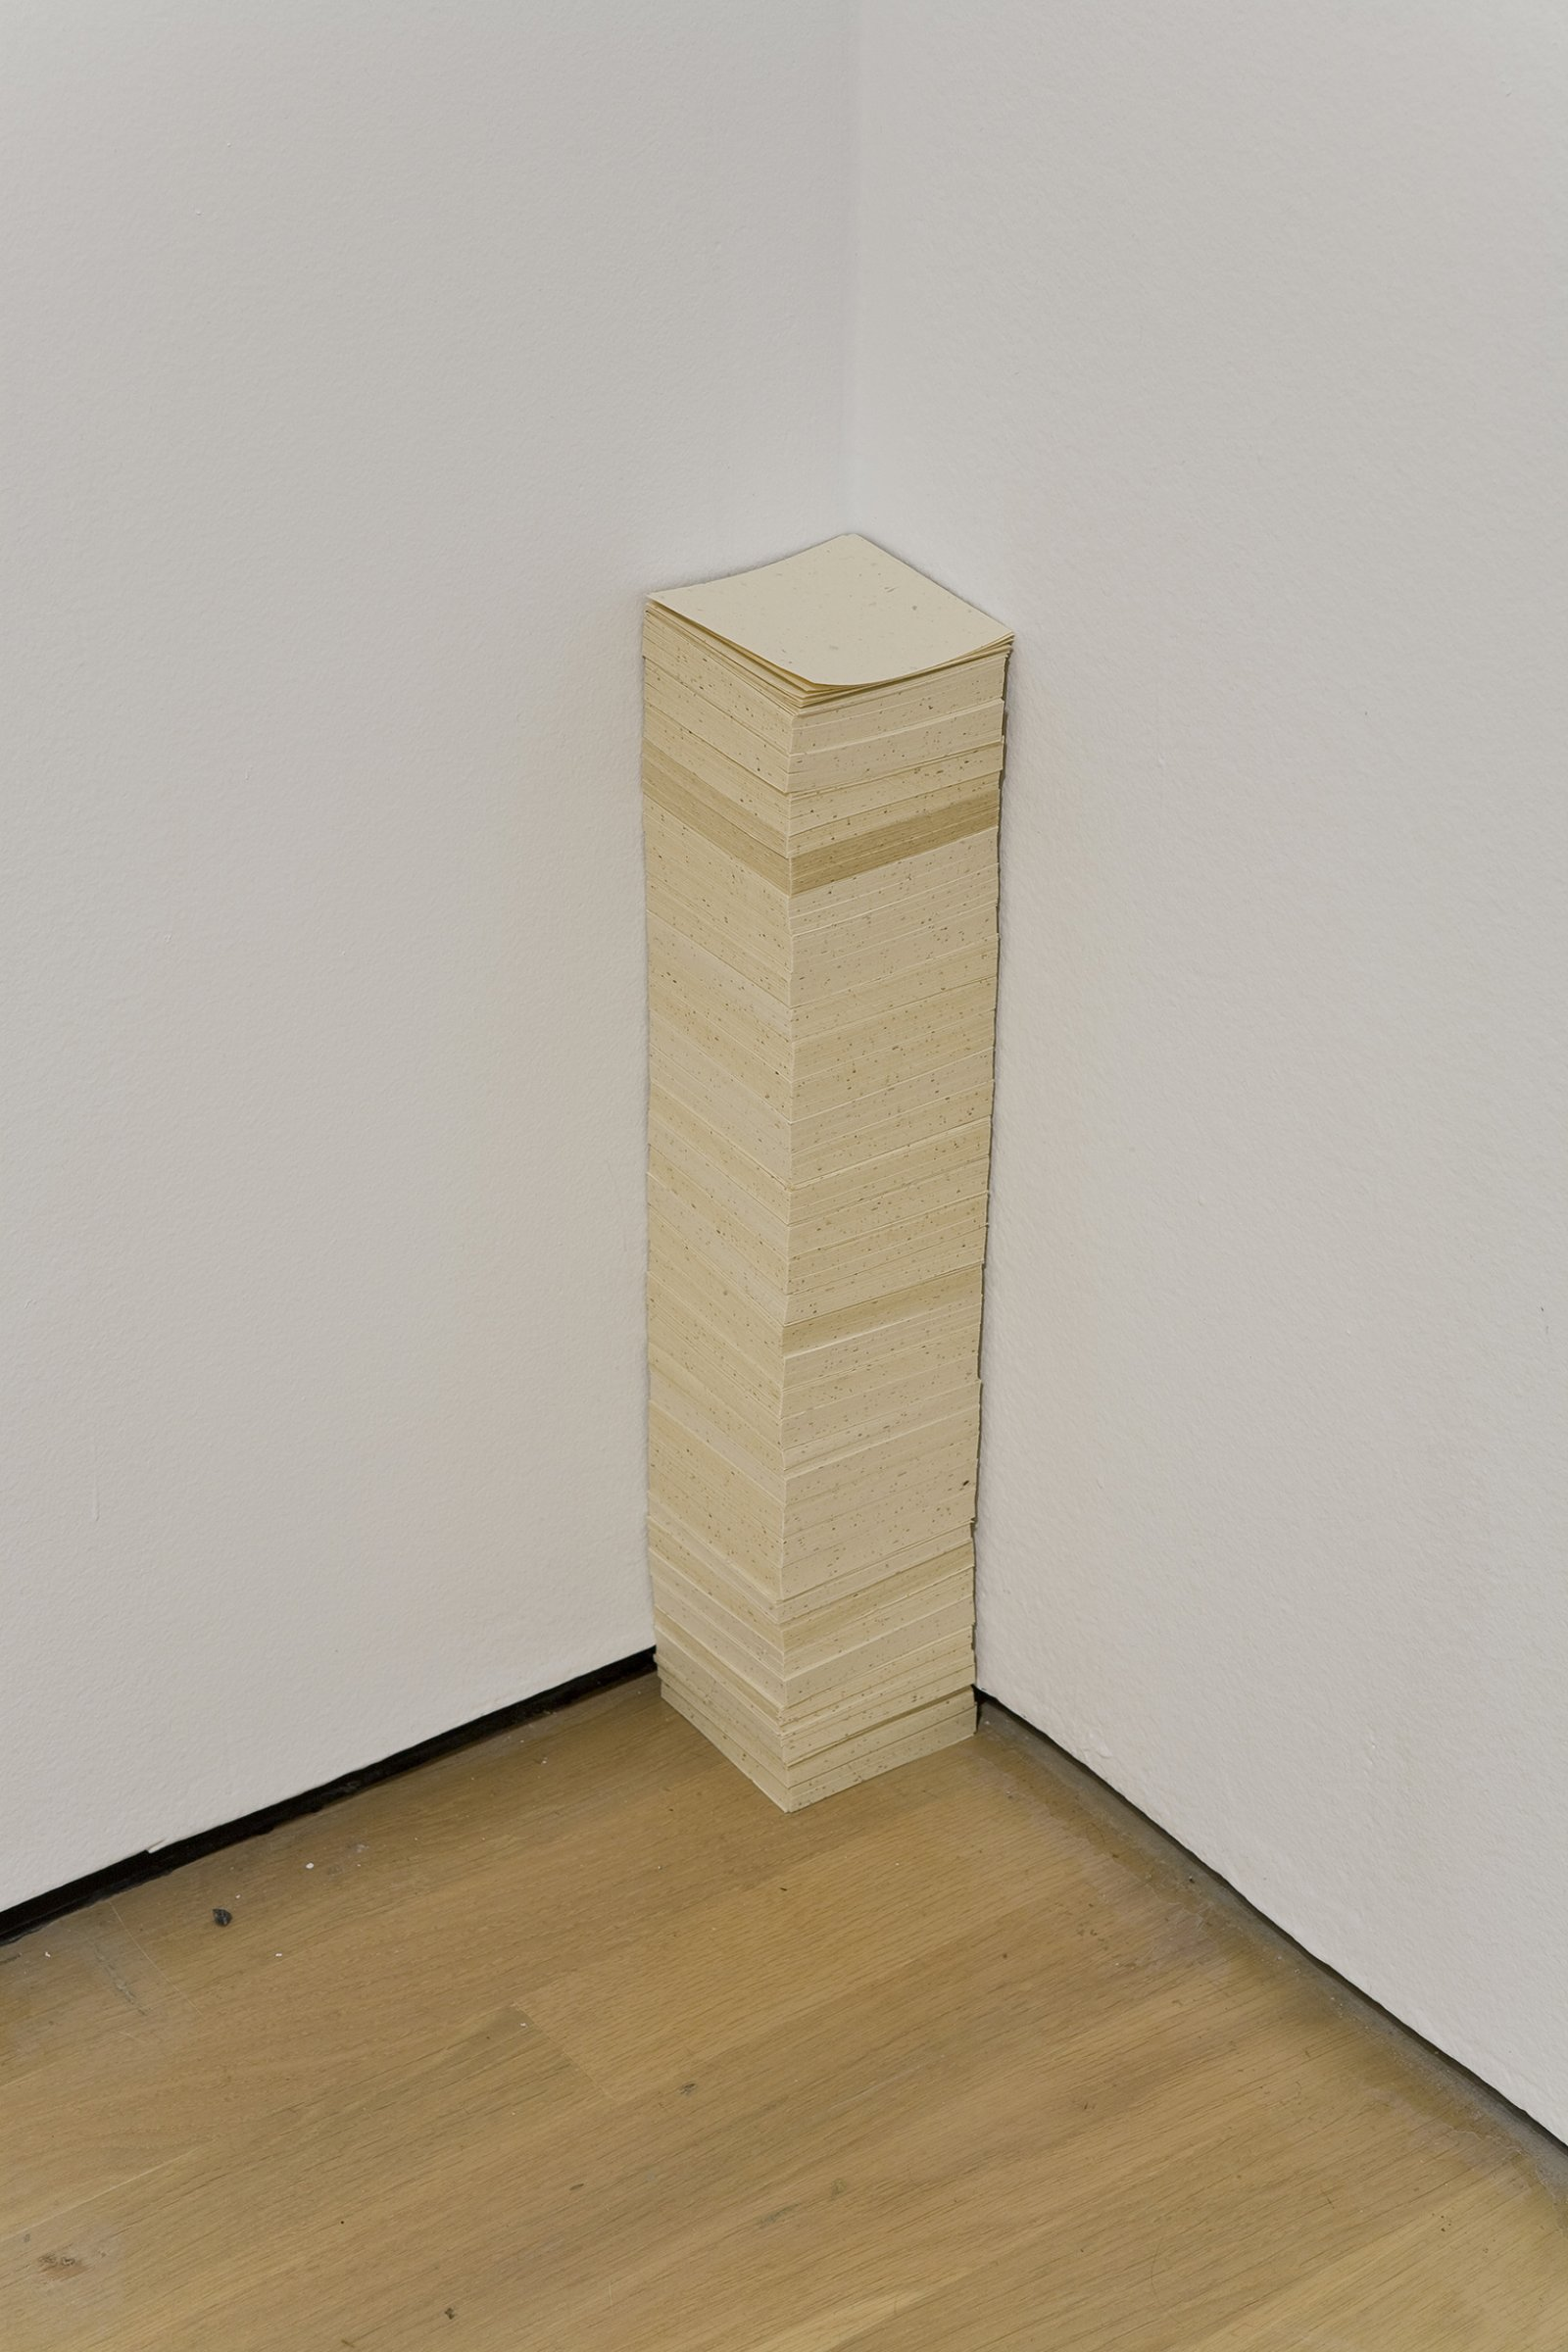 Geoffrey Farmer, The Idea and the Absence of the Idea (Not the Work, the Worker), 2008, paper pile produced as post-it notes from Musée d'Art contemporain de Montréal's ‎hardwood floor at Papeterie Saint-Armand